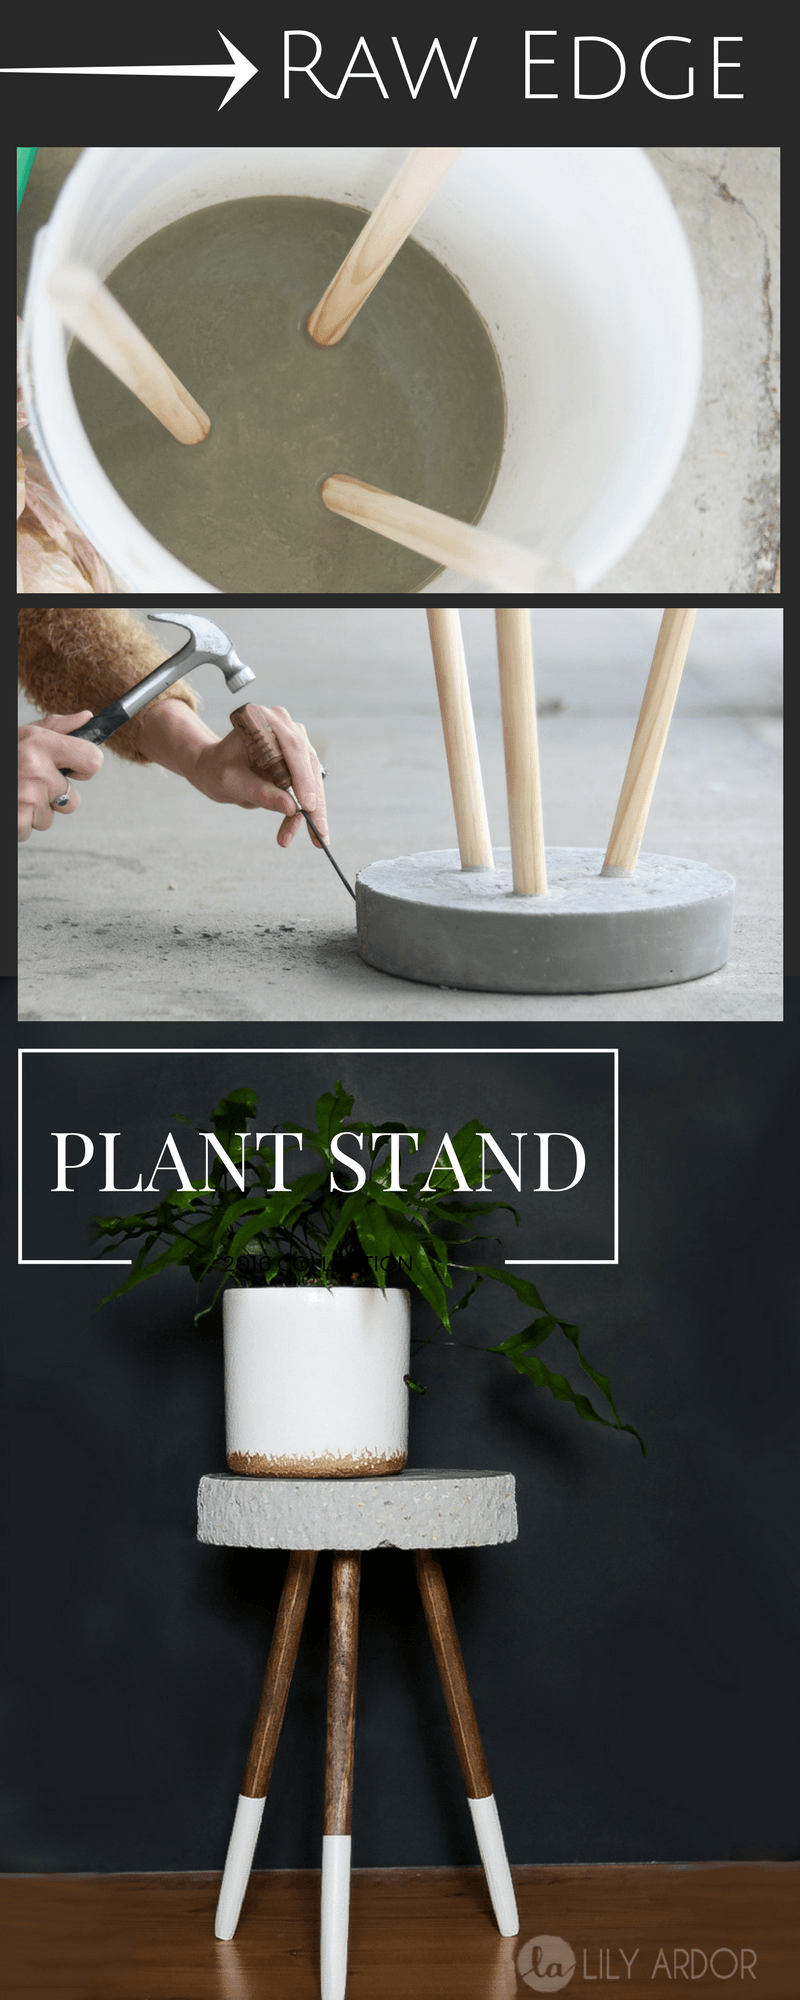 raw edge concrete plant stand diy tutorial diy home find this pin and more on diy home decor by madeinaday